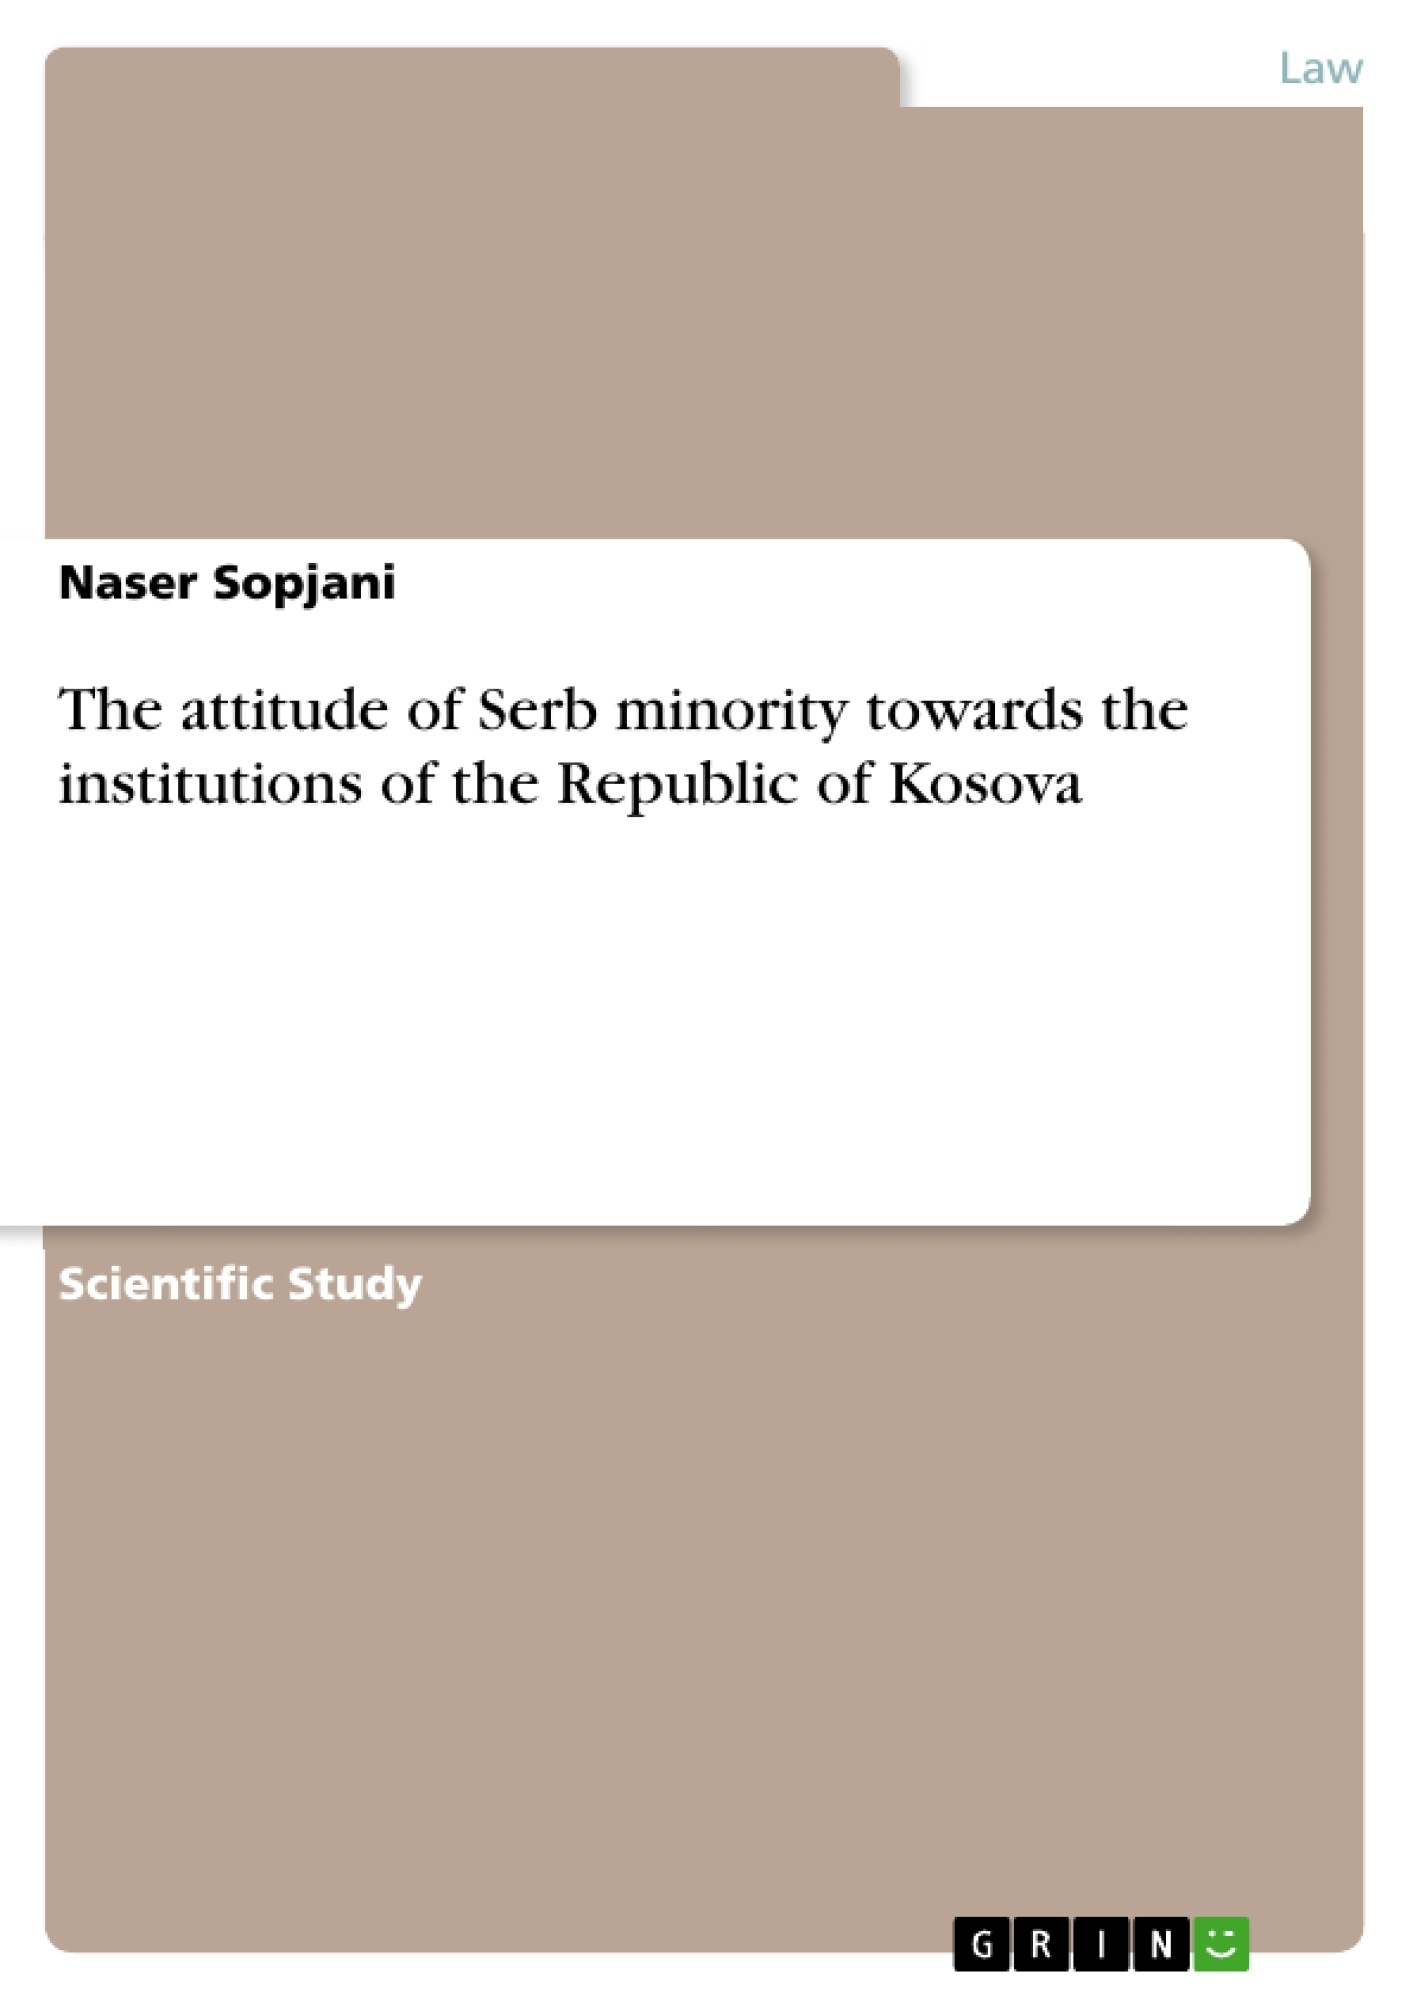 Title: The attitude of Serb minority towards the institutions of the Republic of Kosova